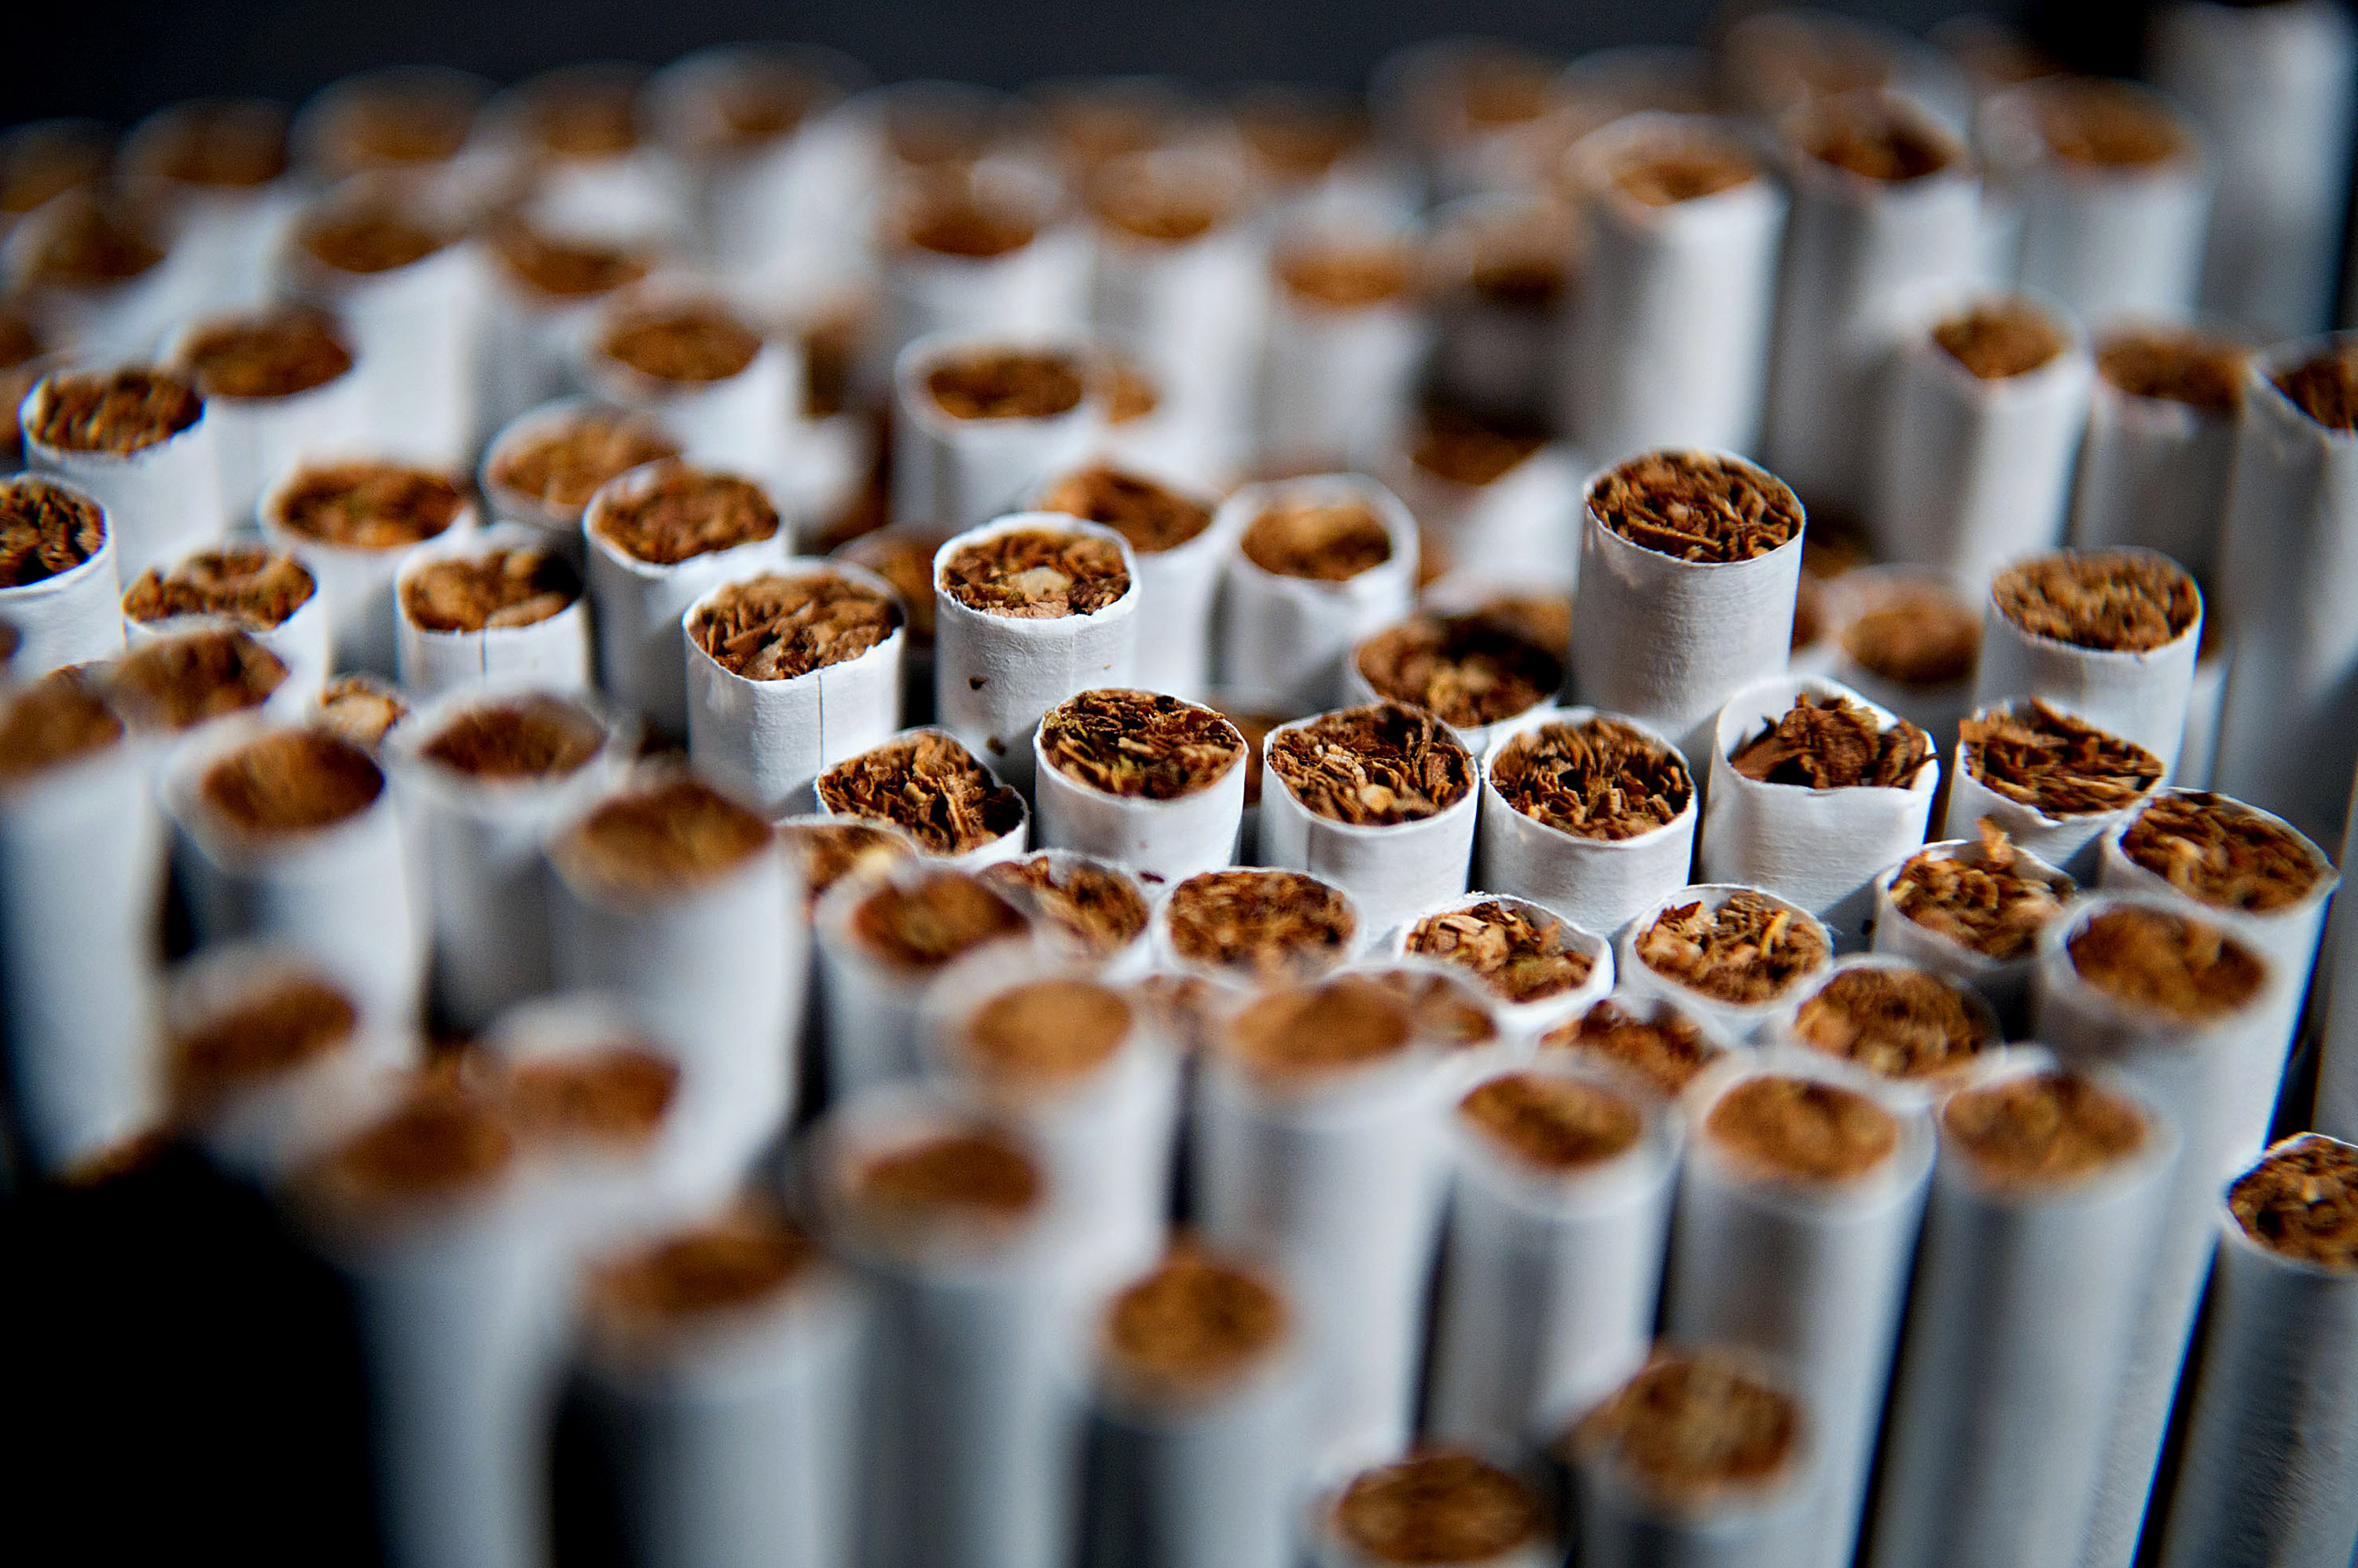 Several brands of cigarettes are arranged for a photograph in Tiskilwa, Illinois, U.S., on April 17, 2012.